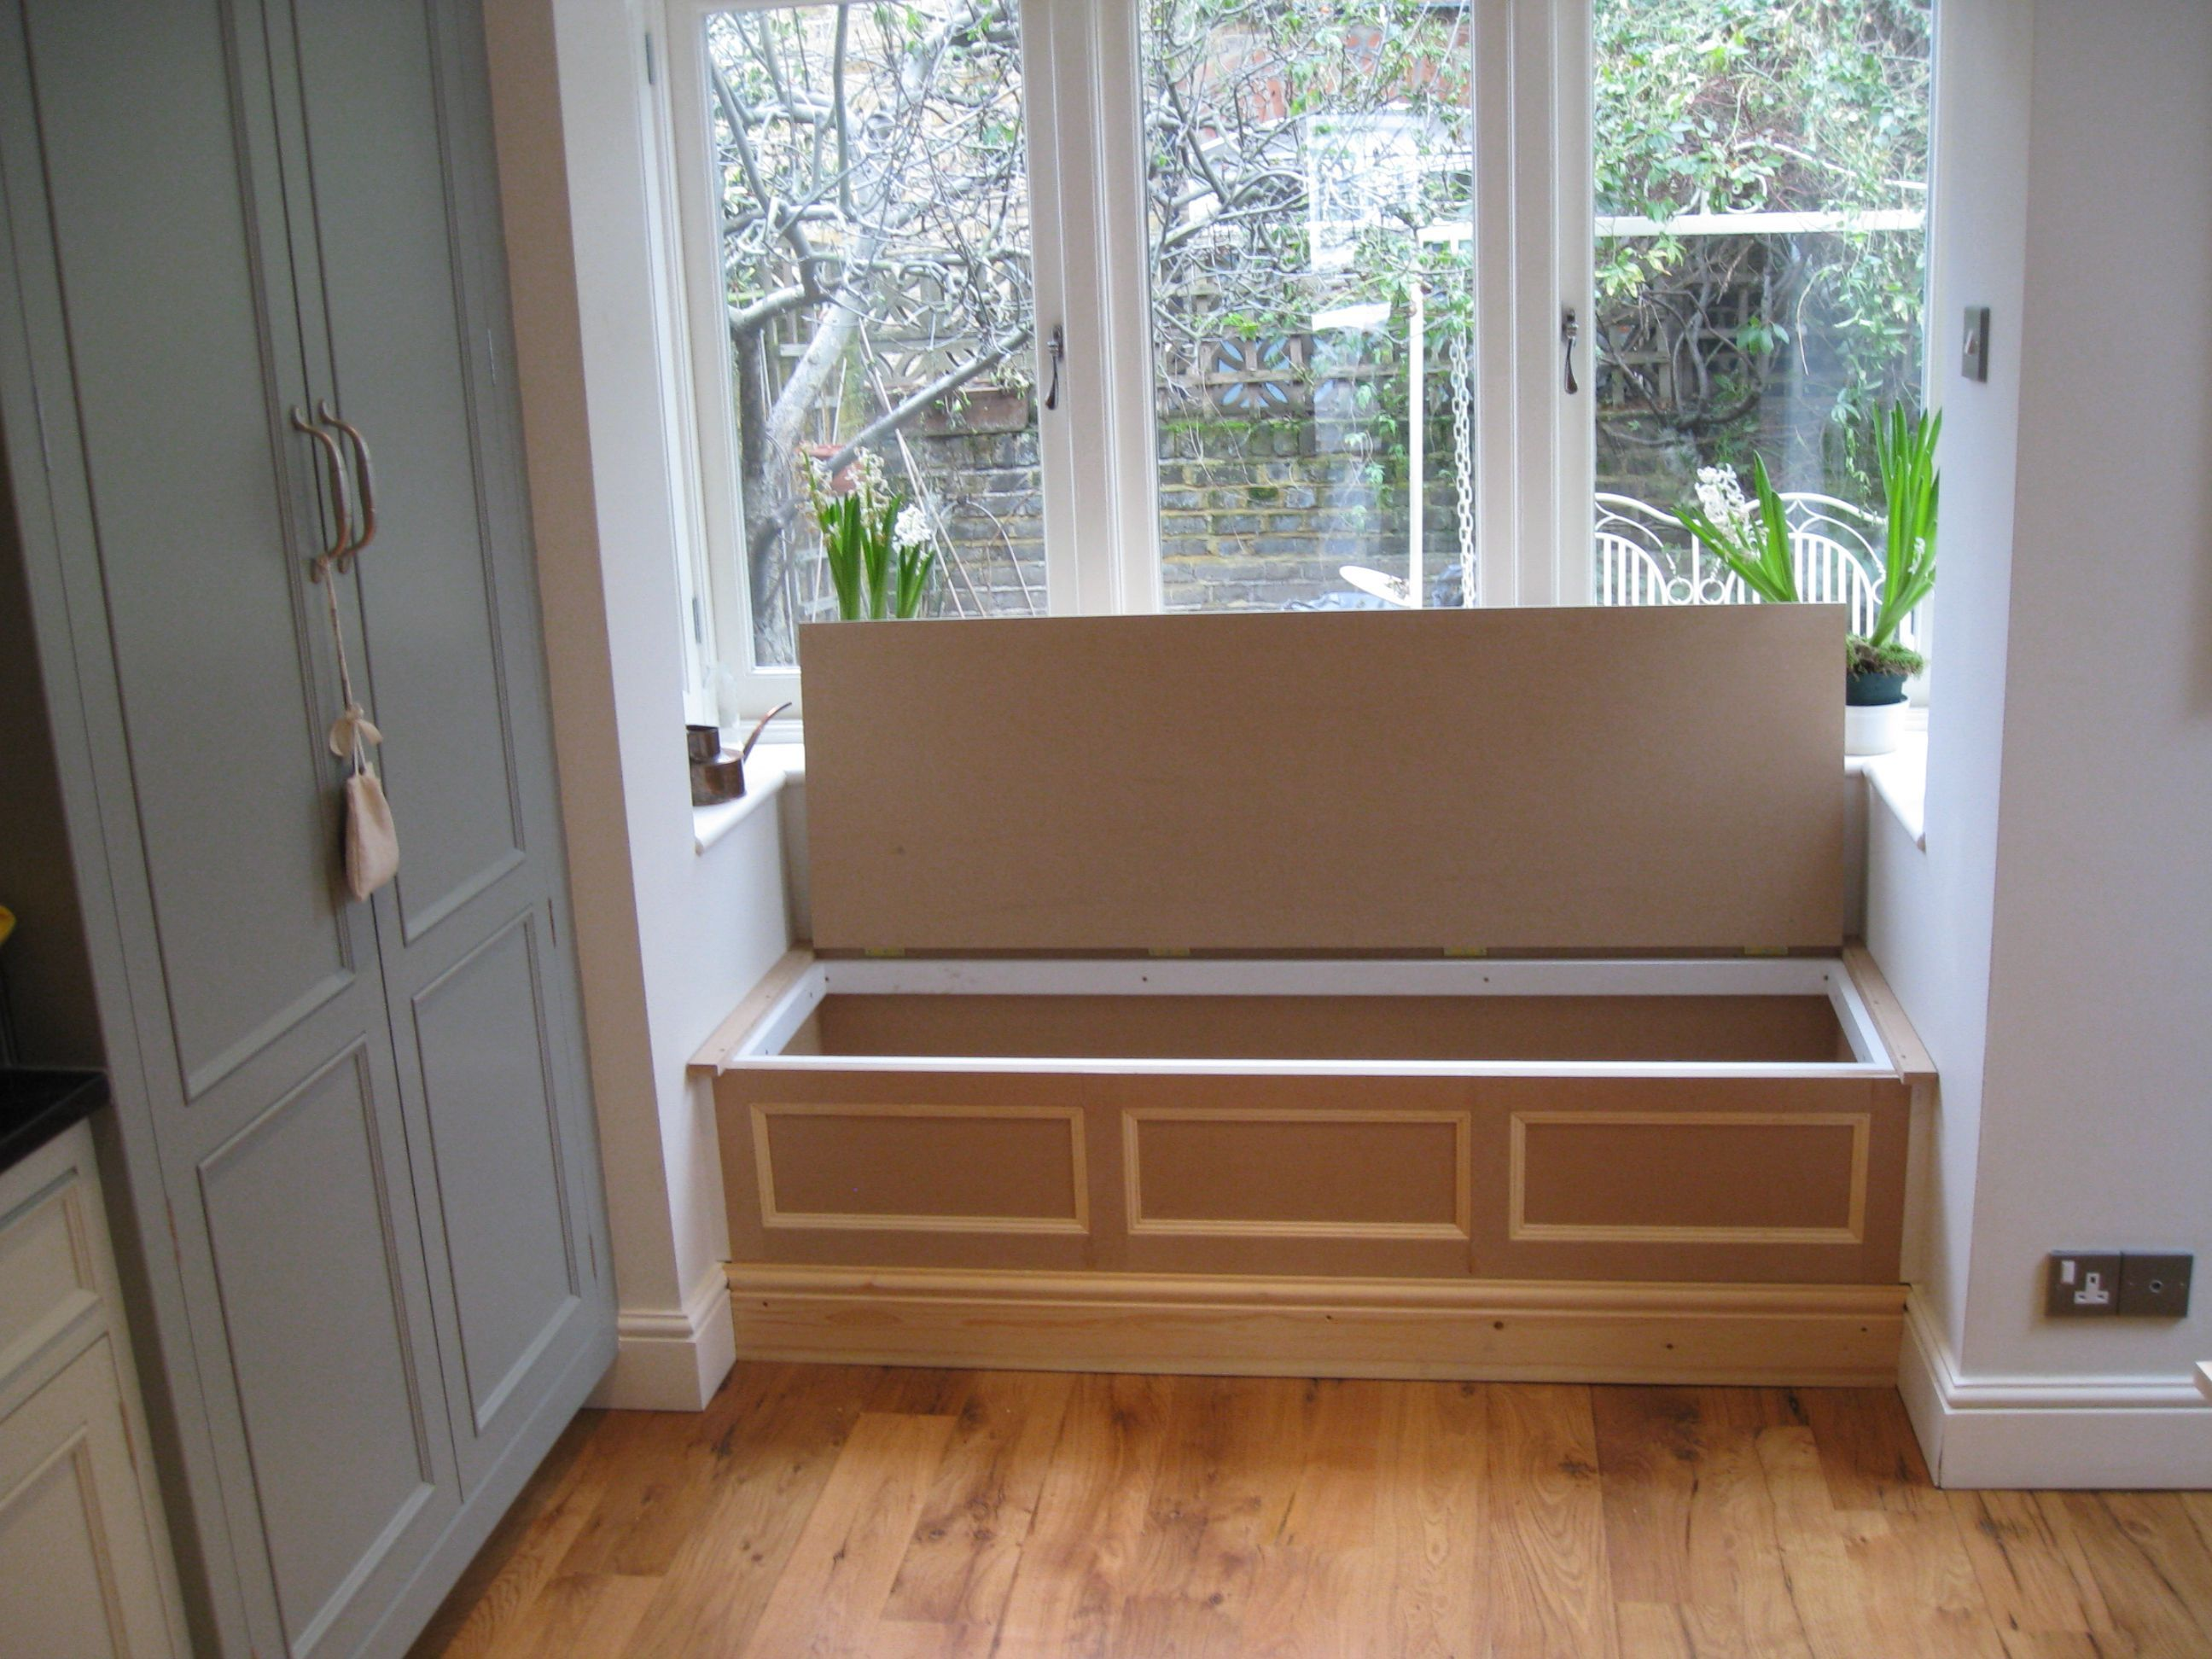 Box bay window seat with on interior